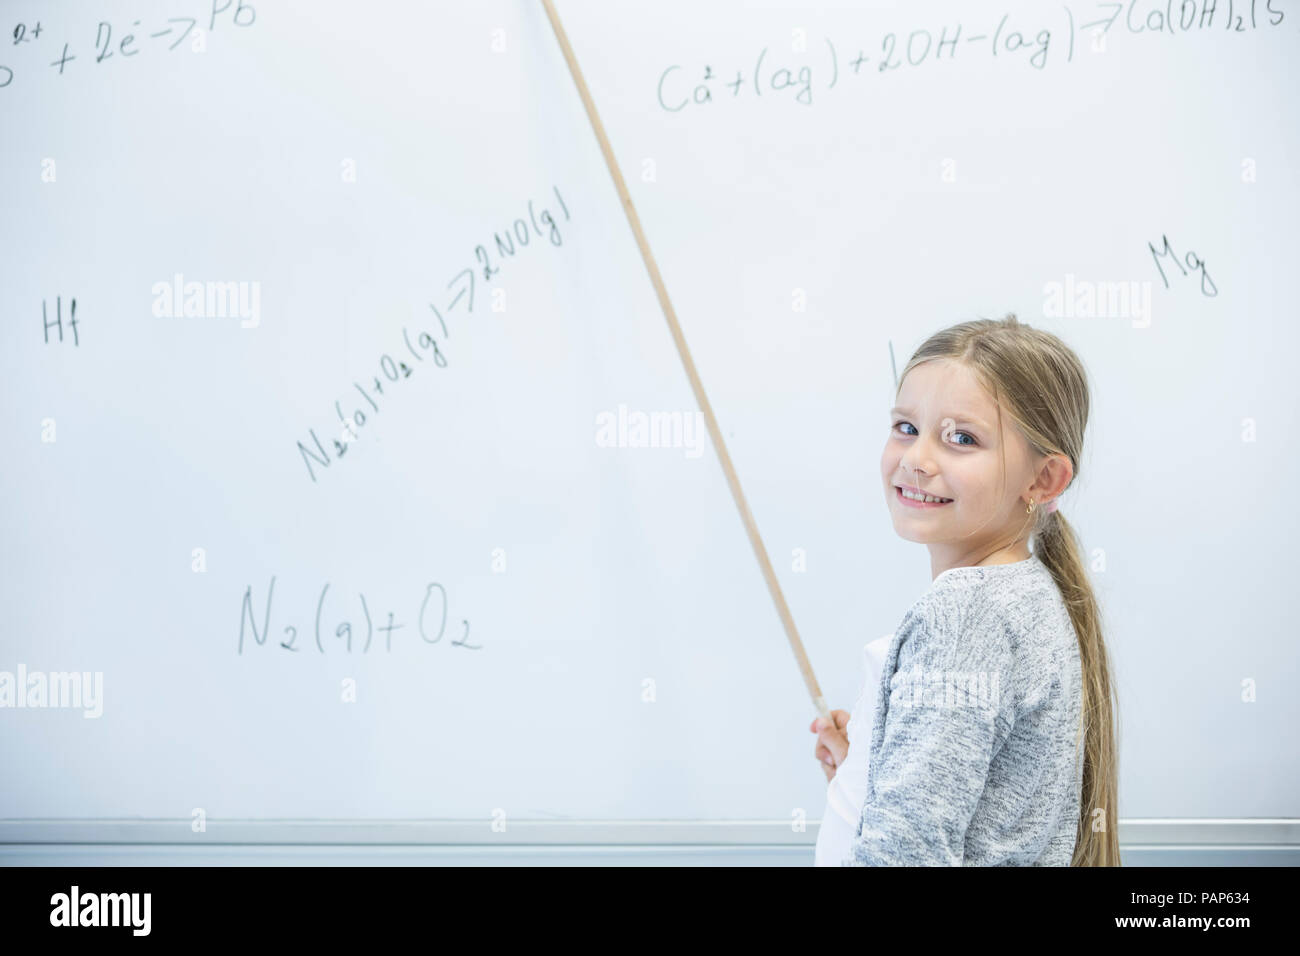 Smiling schoolgirl explaining formula at whiteboard in class - Stock Image